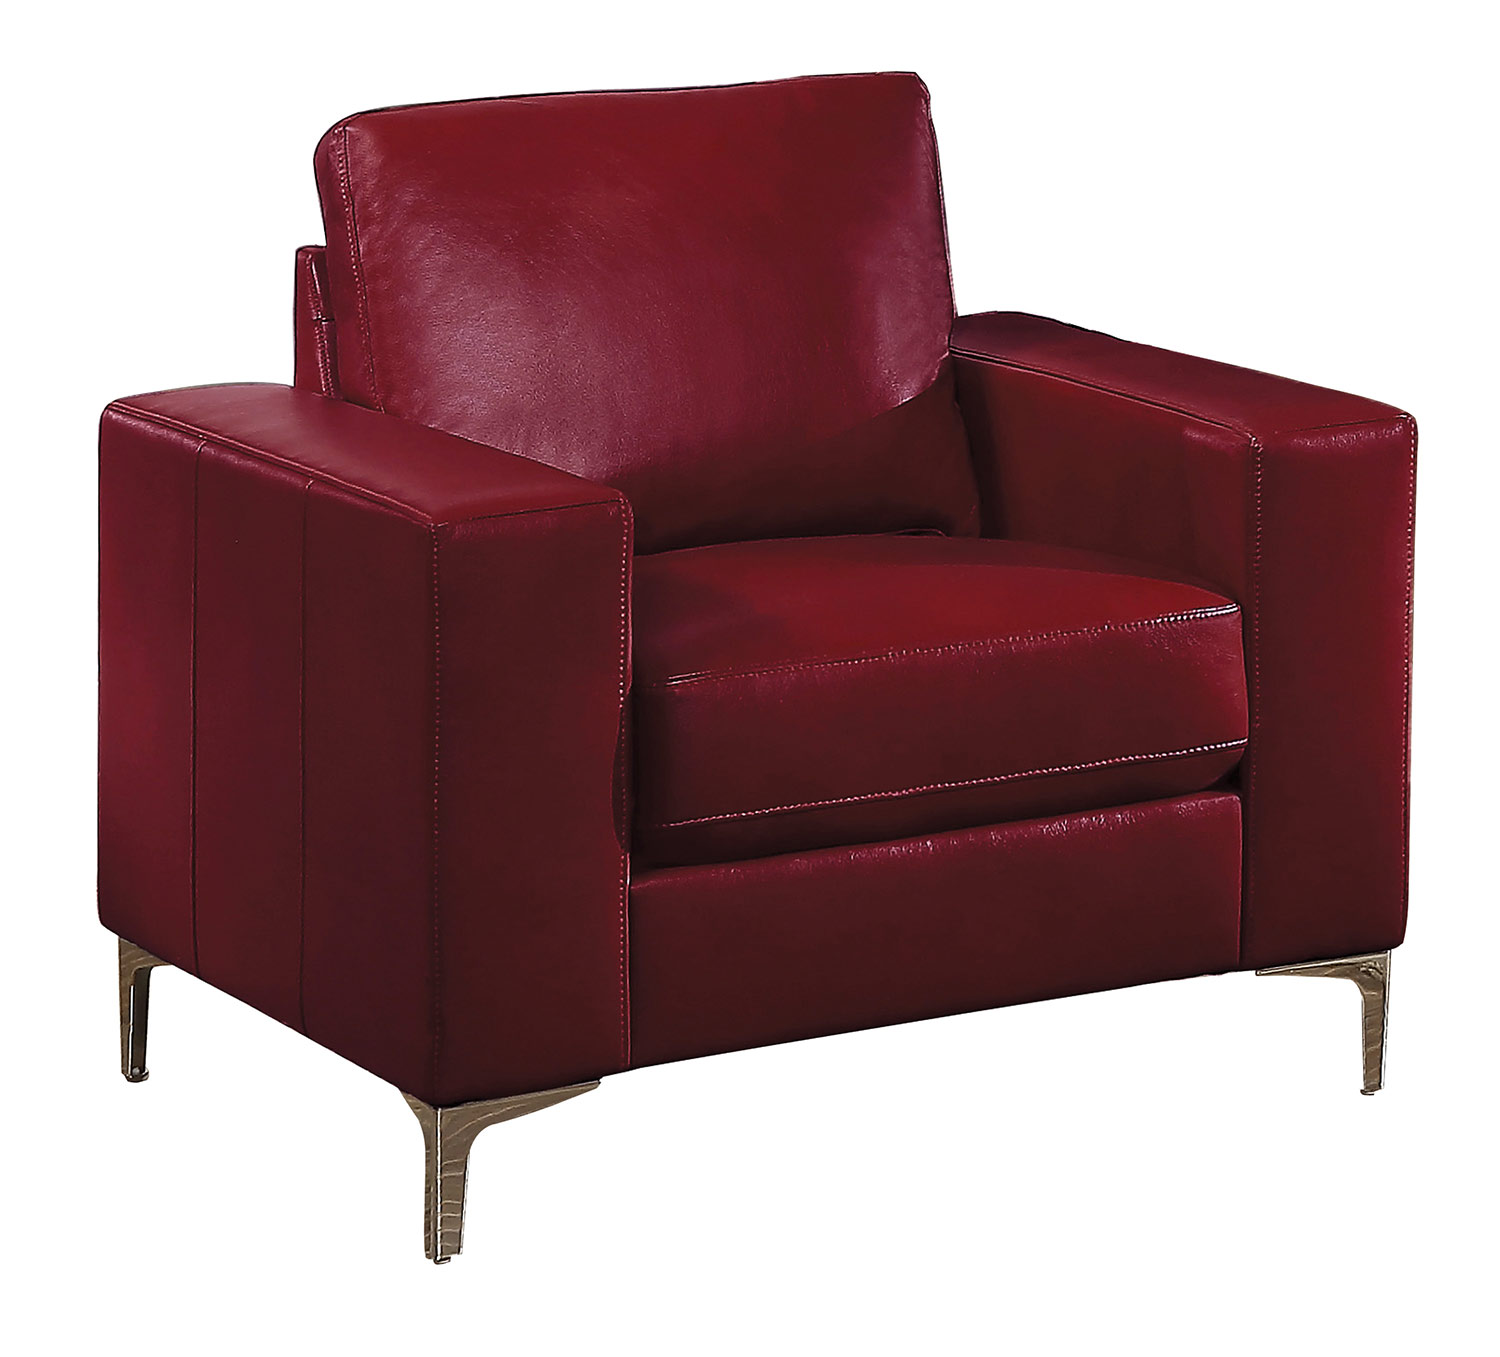 Homelegance Iniko Chair - Red Leather Gel Match